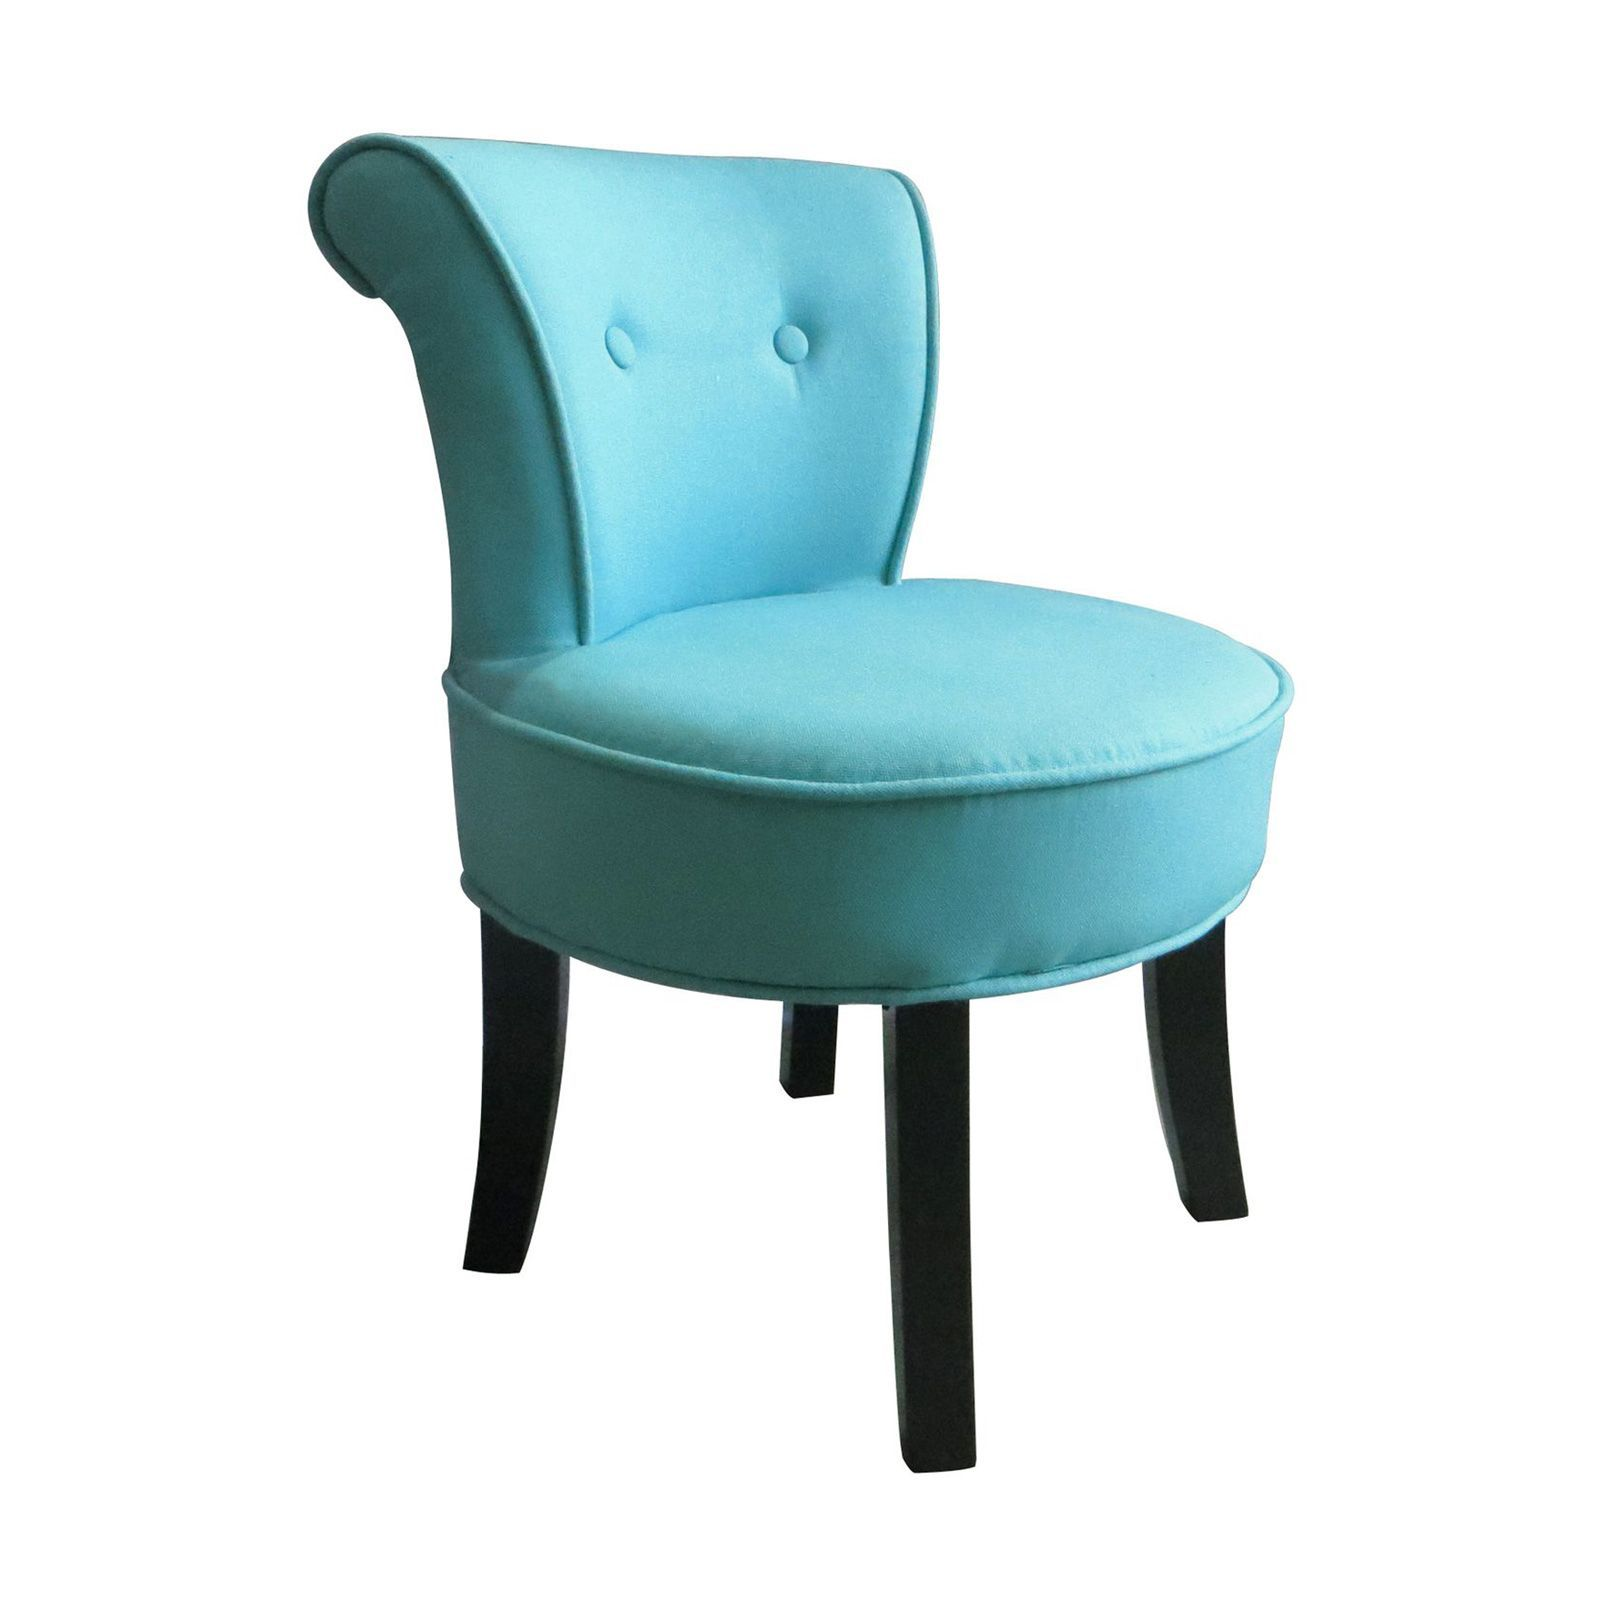 Potiron crapaud fauteuil turquoise brandalley - Fauteuil crapaud potiron ...